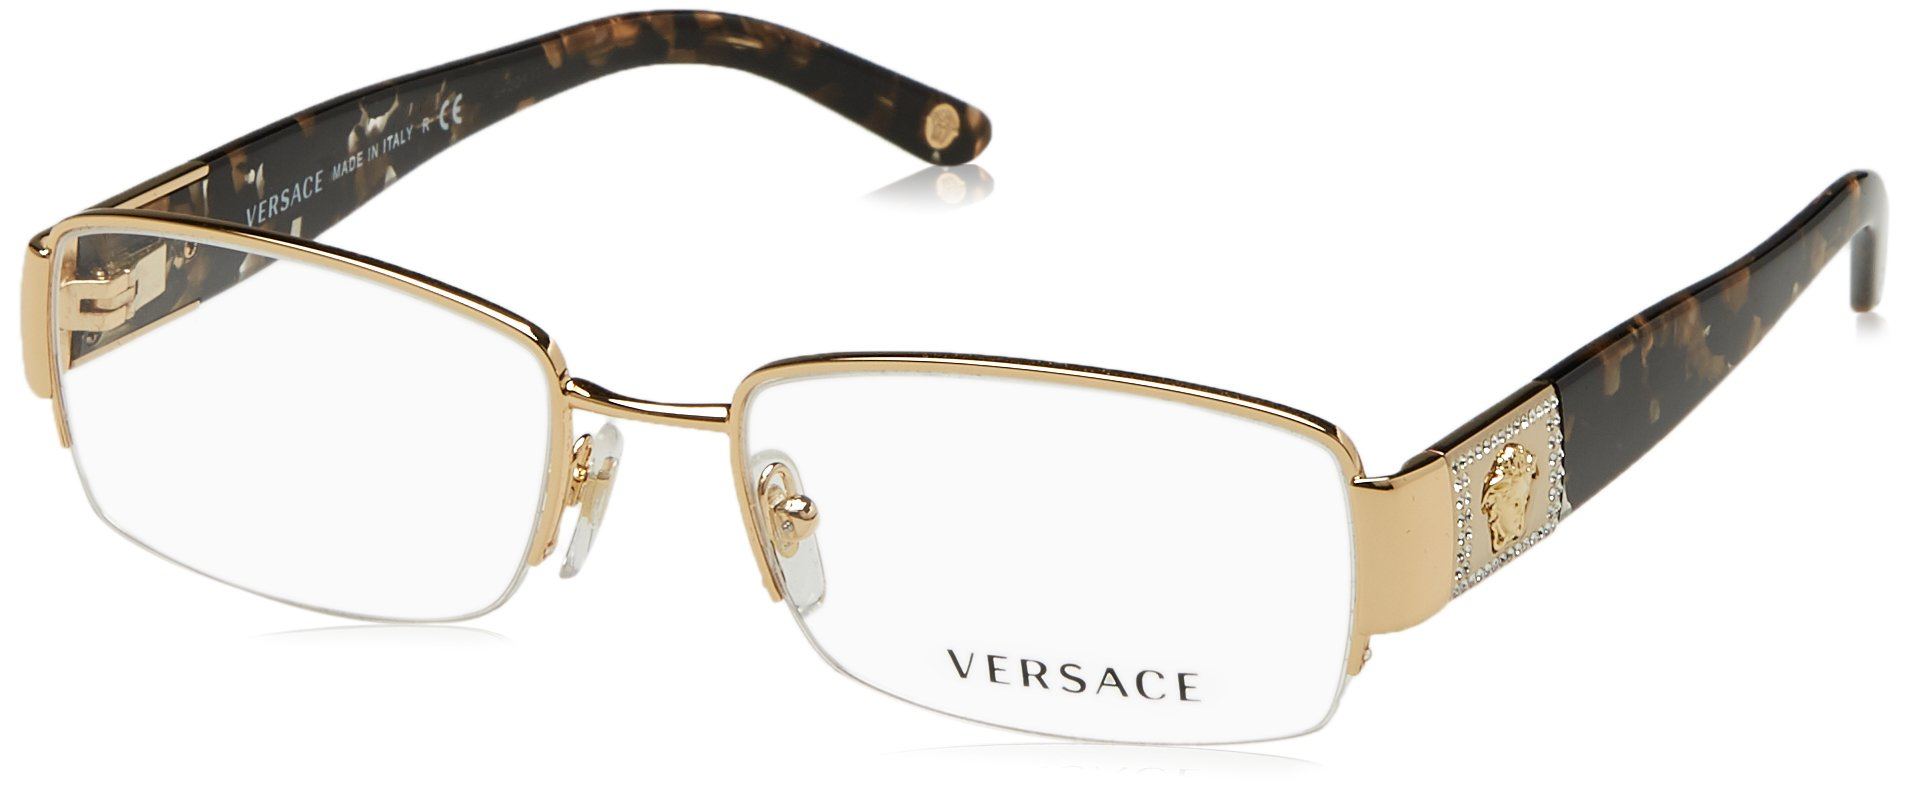 Versace VE 1175B Eyeglasses w/ Gold Frame and Non-Rx 51 mm Diameter Lenses, VE1175B-1002-51